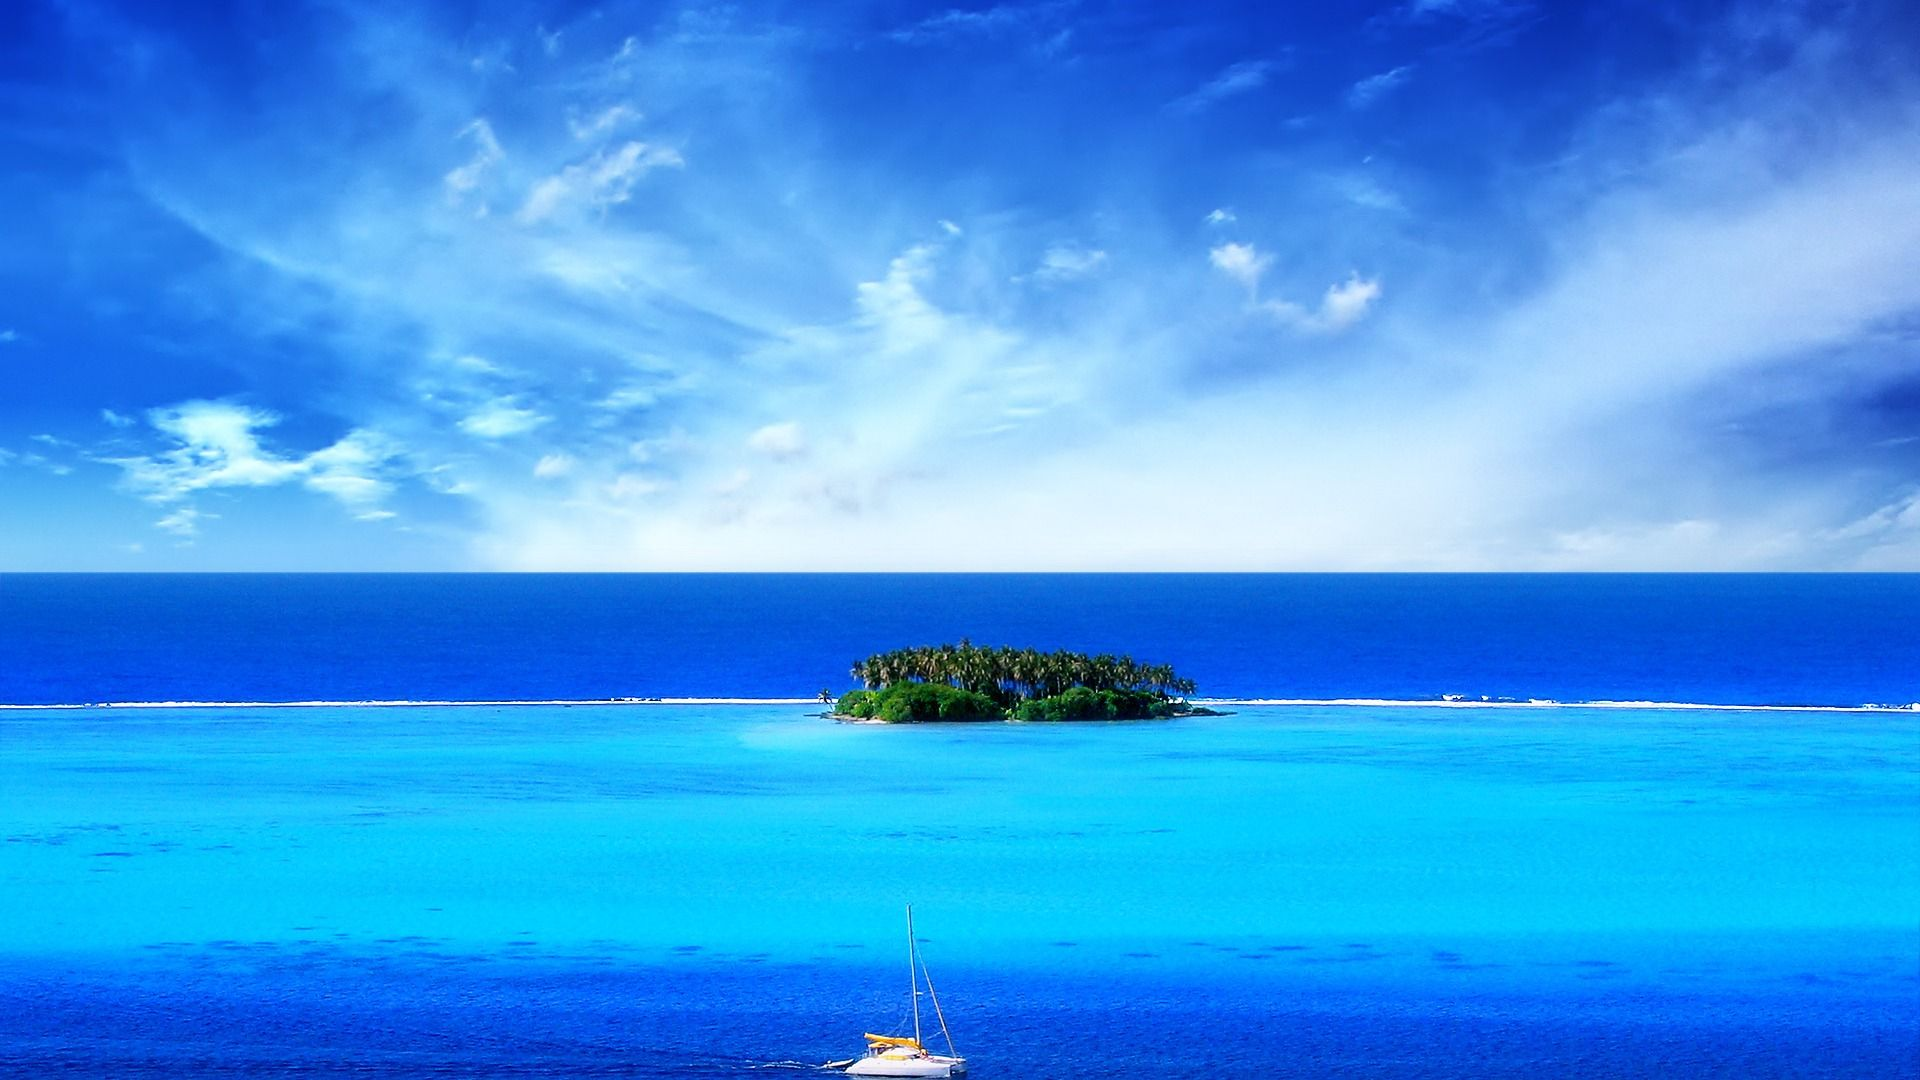 Beautiful Ocean hd wallpaper download